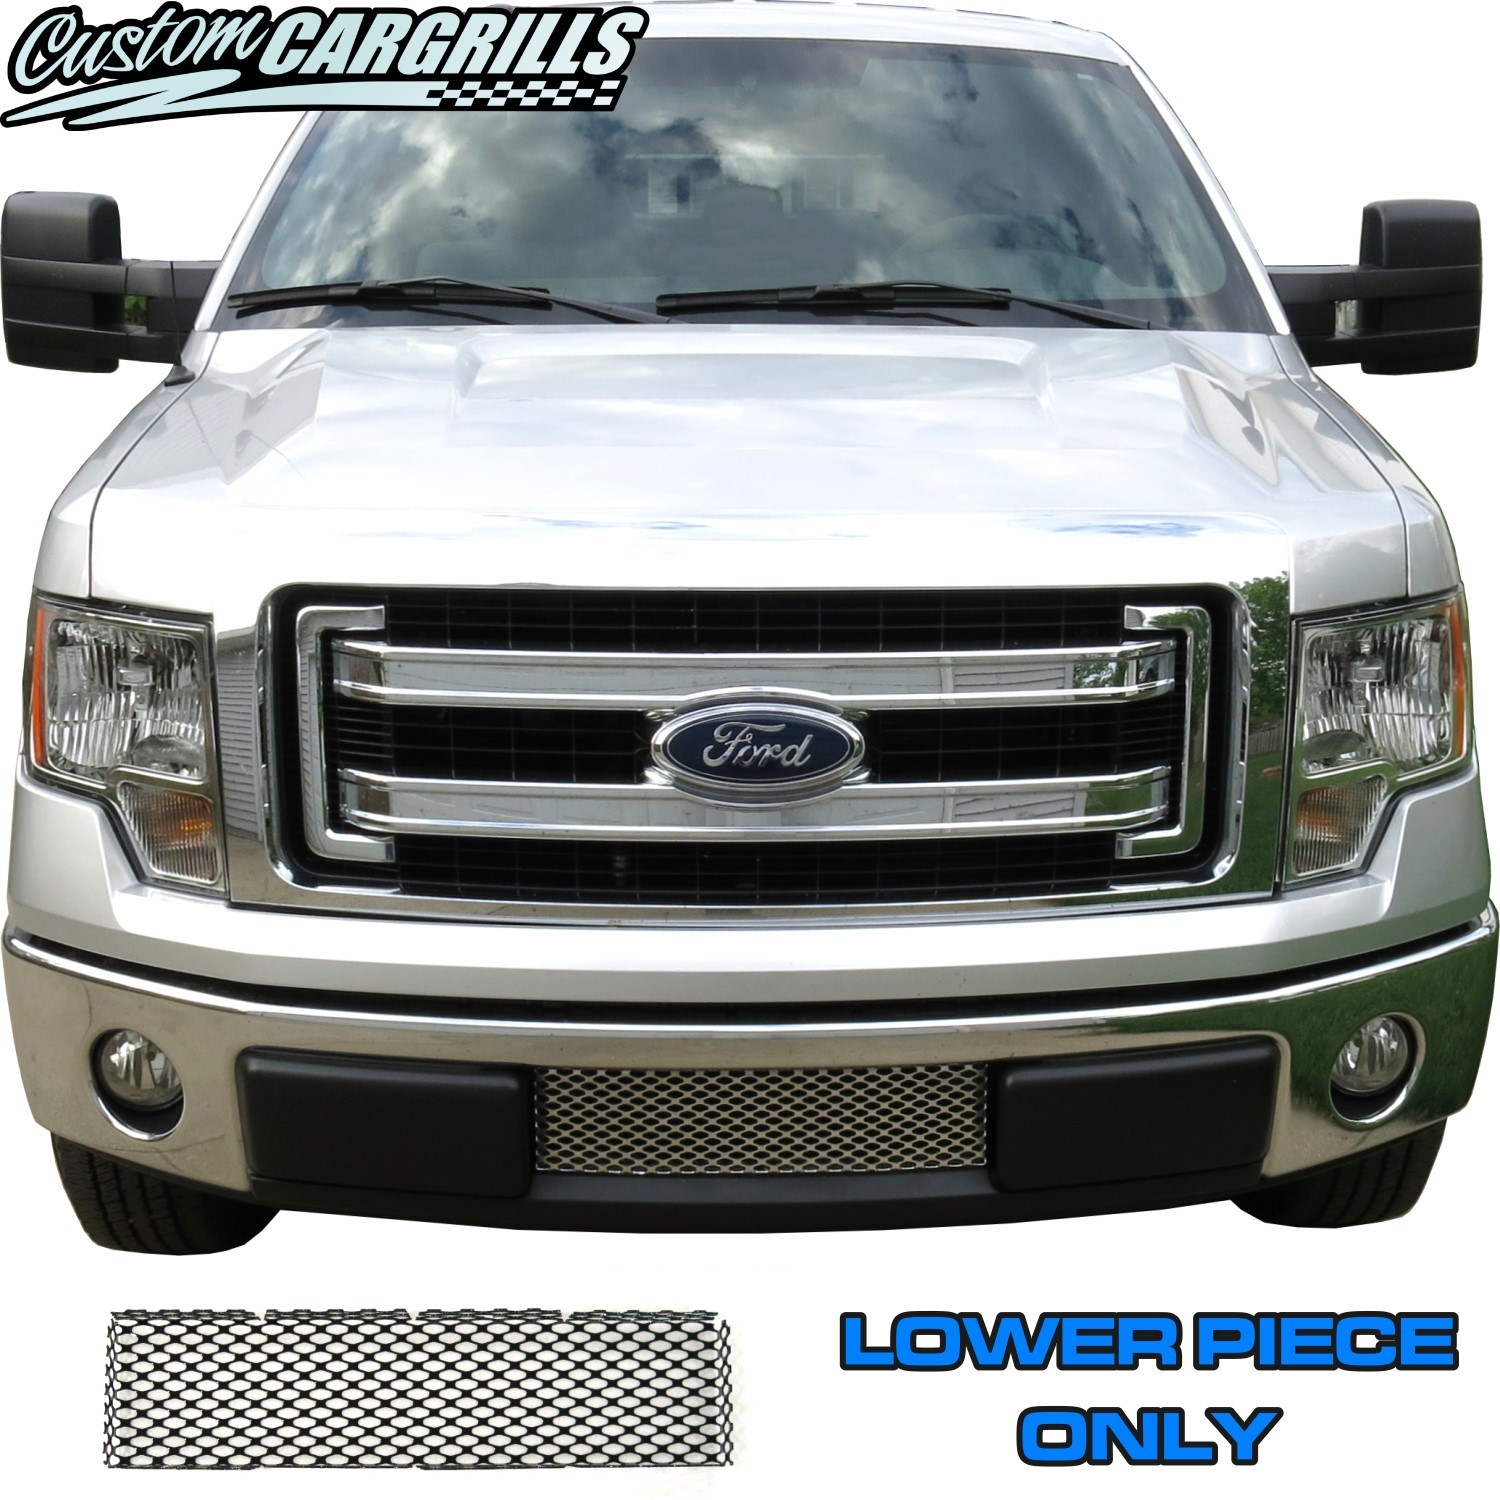 2009 - 2013 Ford F-150 Lower Bumper Mesh Kit